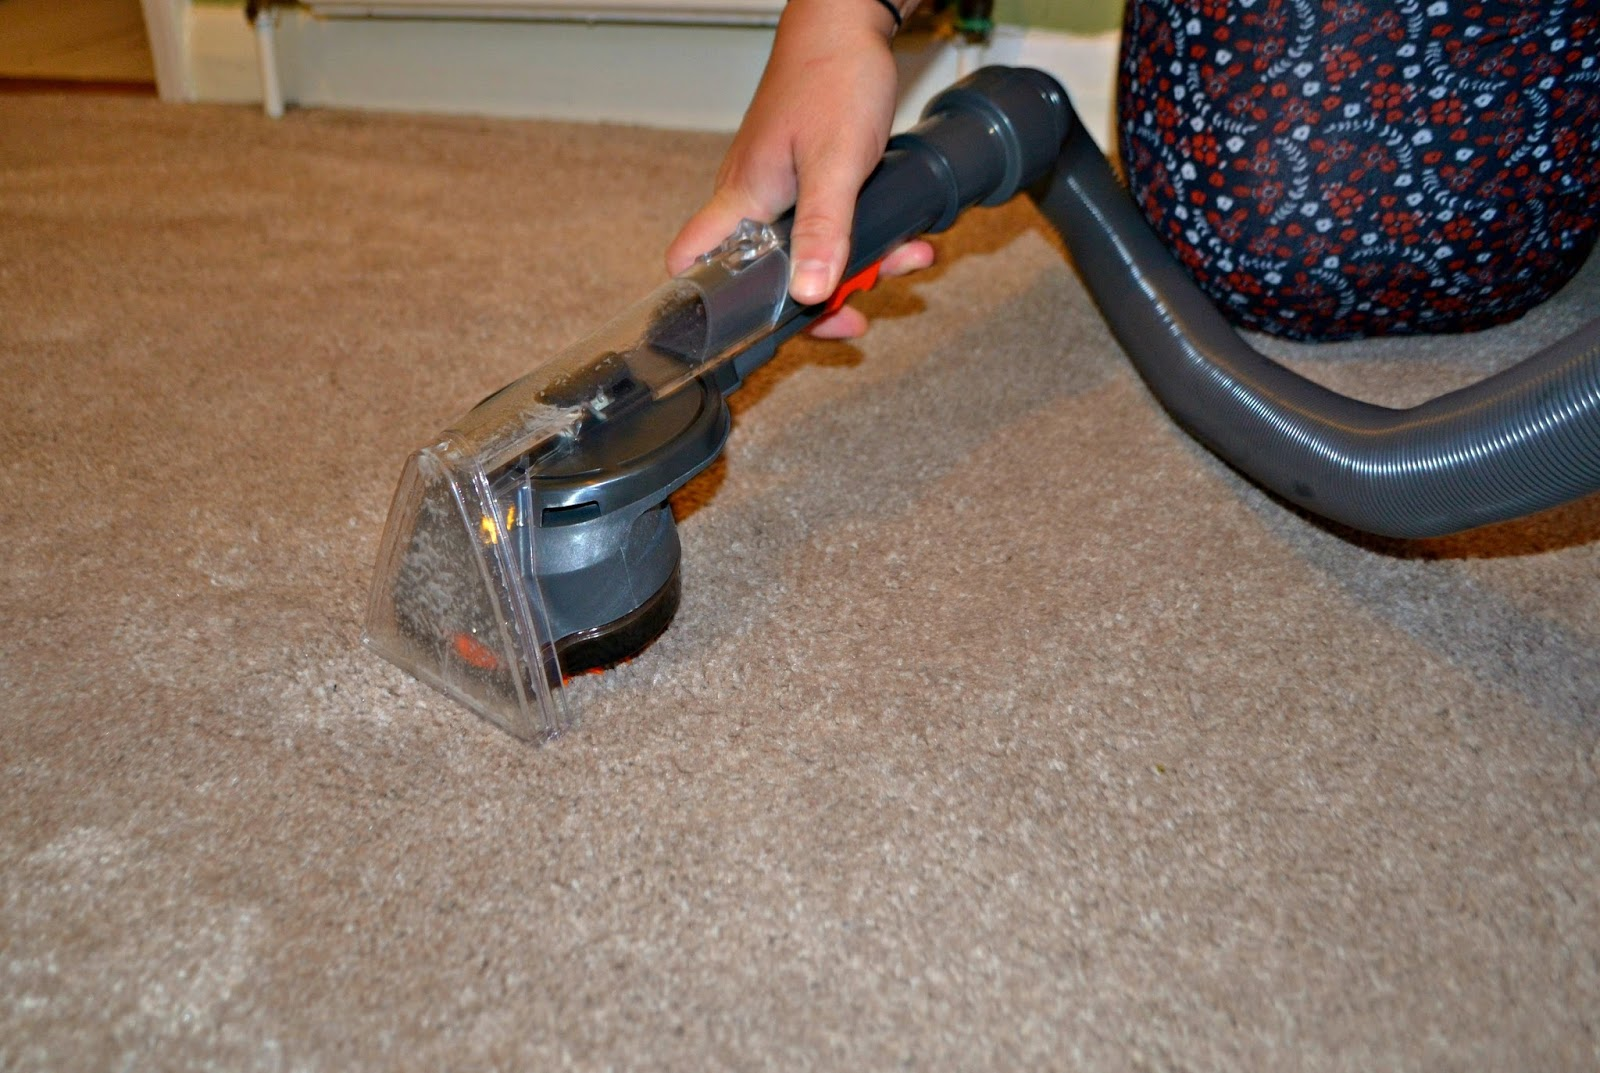 ... vax dual power pro carpet cleaner handheld attachment ...